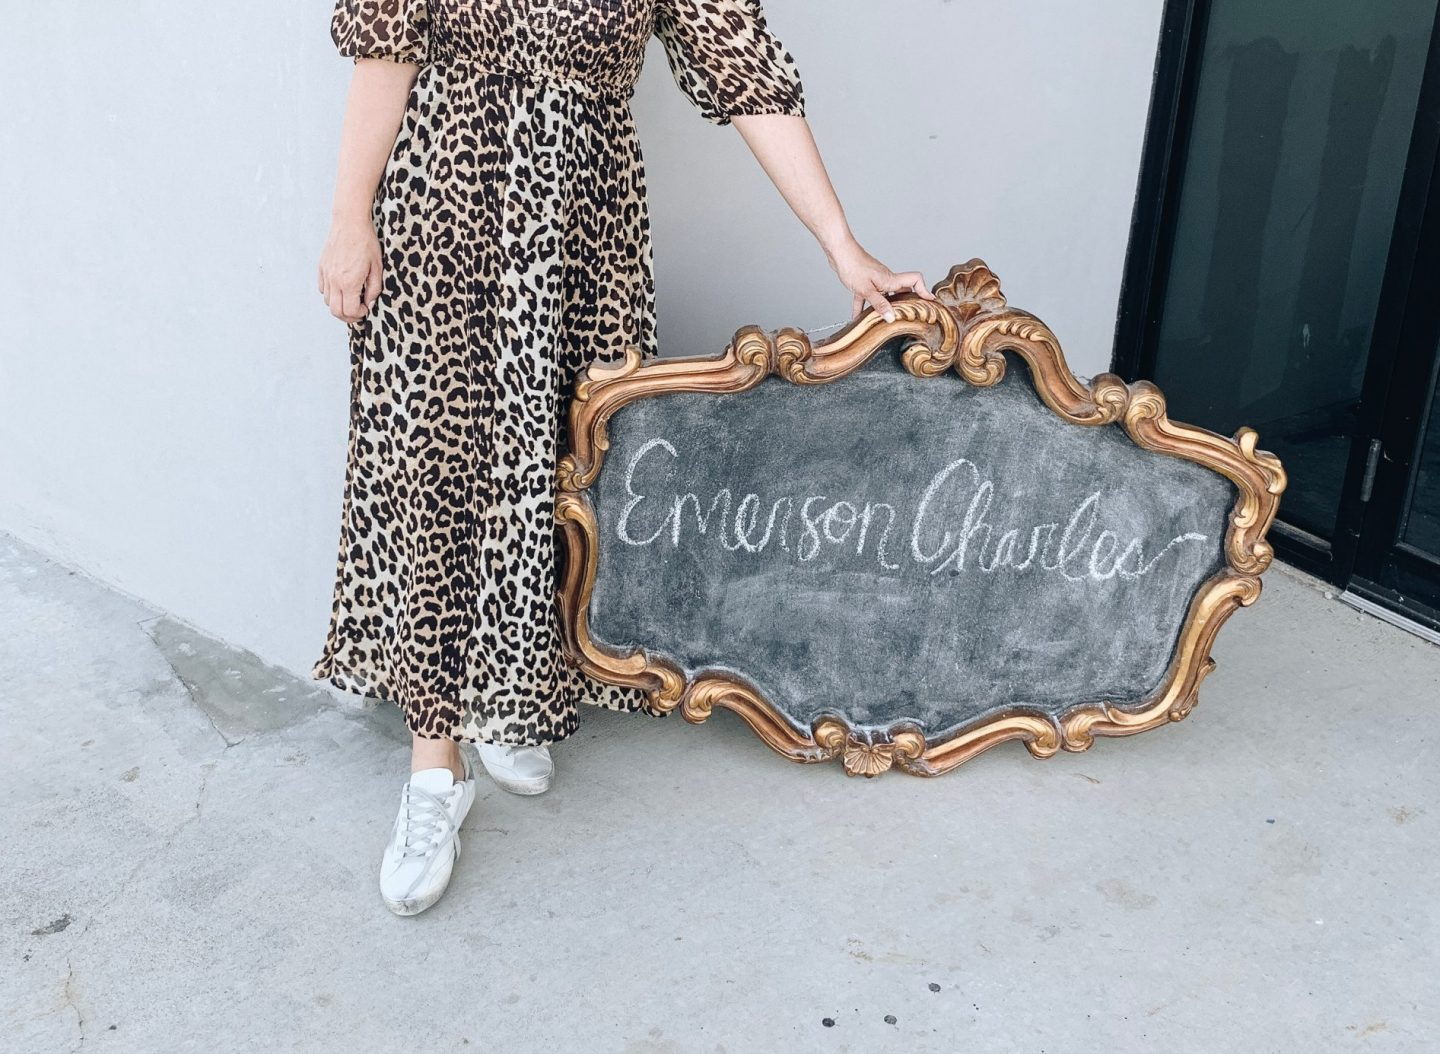 Boutique Shopping, Asos, Leopard Maxi Dress, Golden Goose, Online Boutique, Emerson Charles